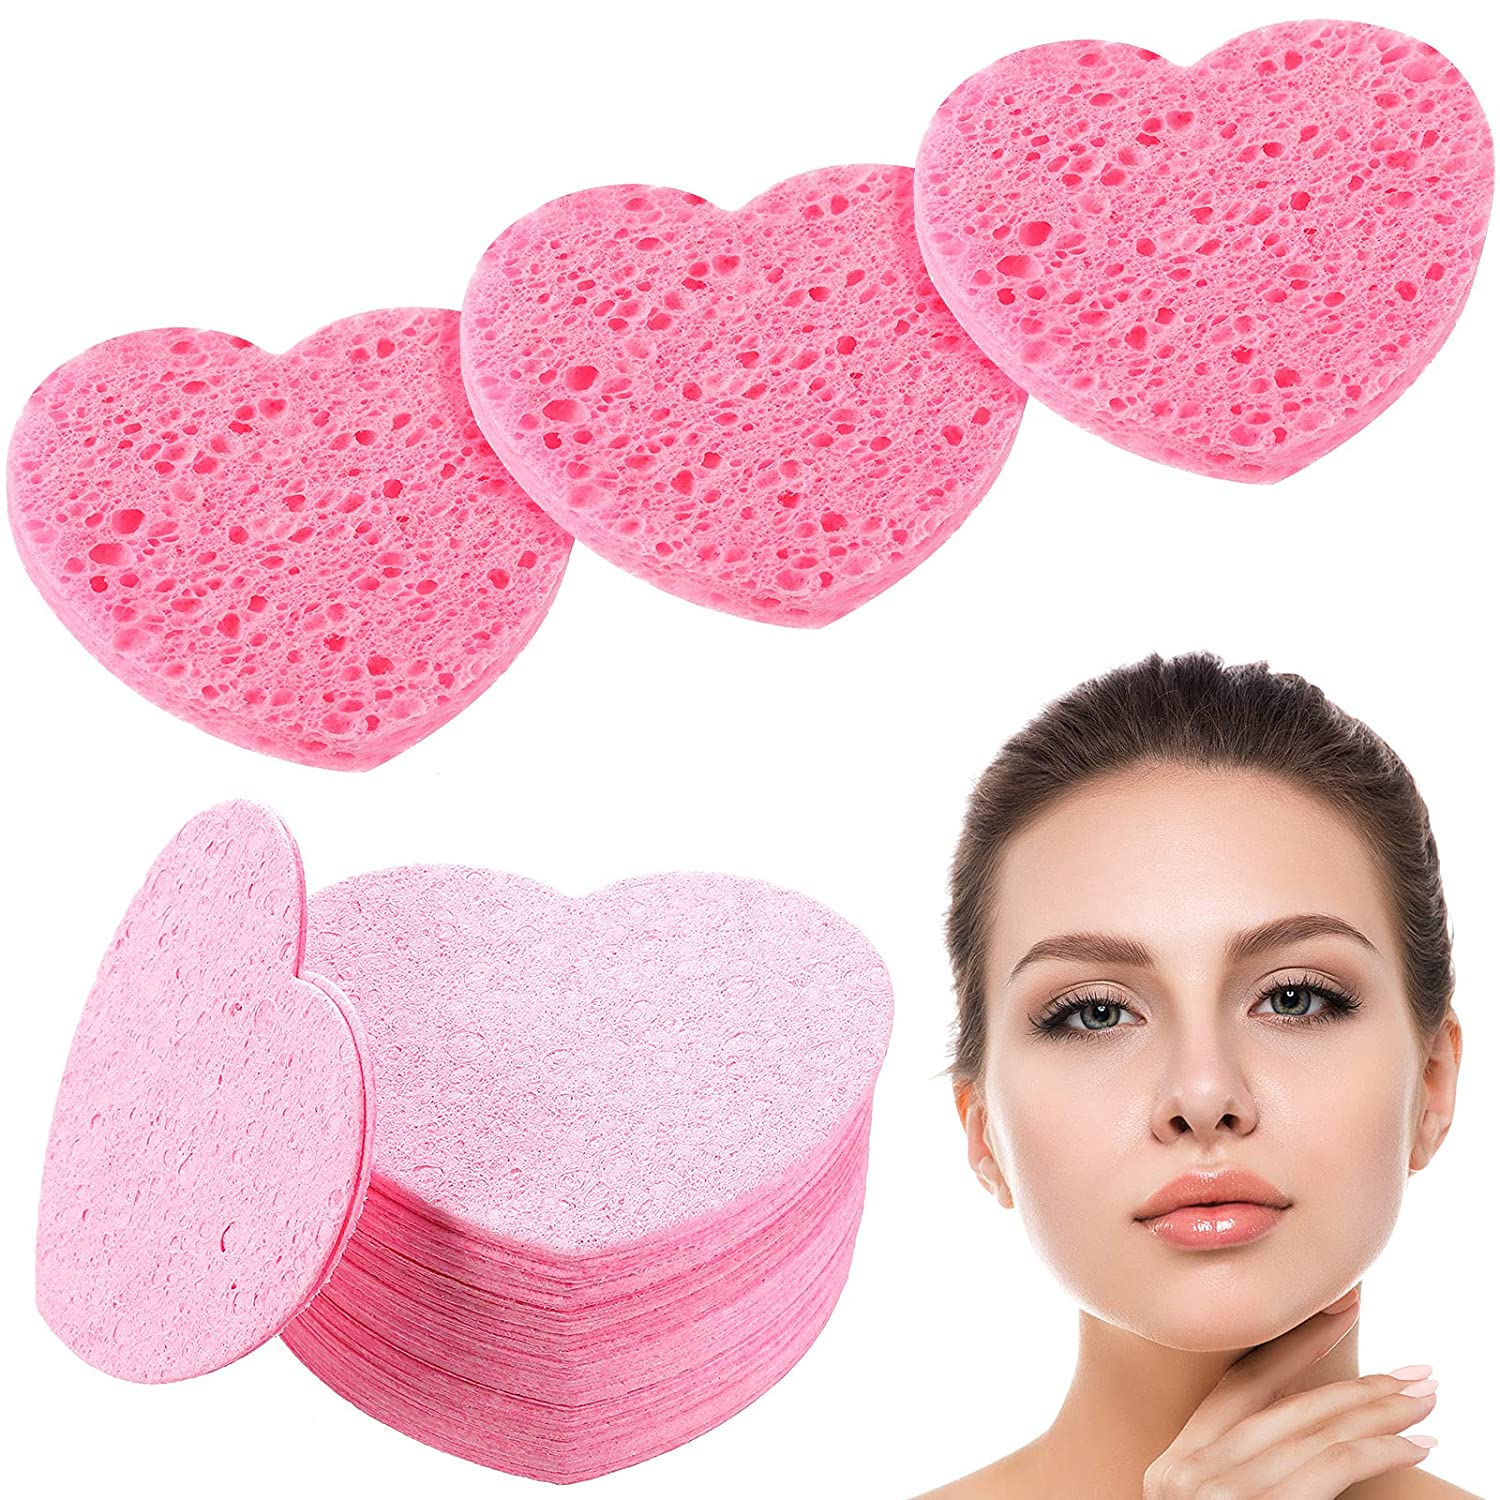 50 Pieces Heart Shape Facial Sponges Compressed Natural Cellulose Sponge Facial Scrub Sponge for Face Cleansing Exfoliating and Makeup Removal